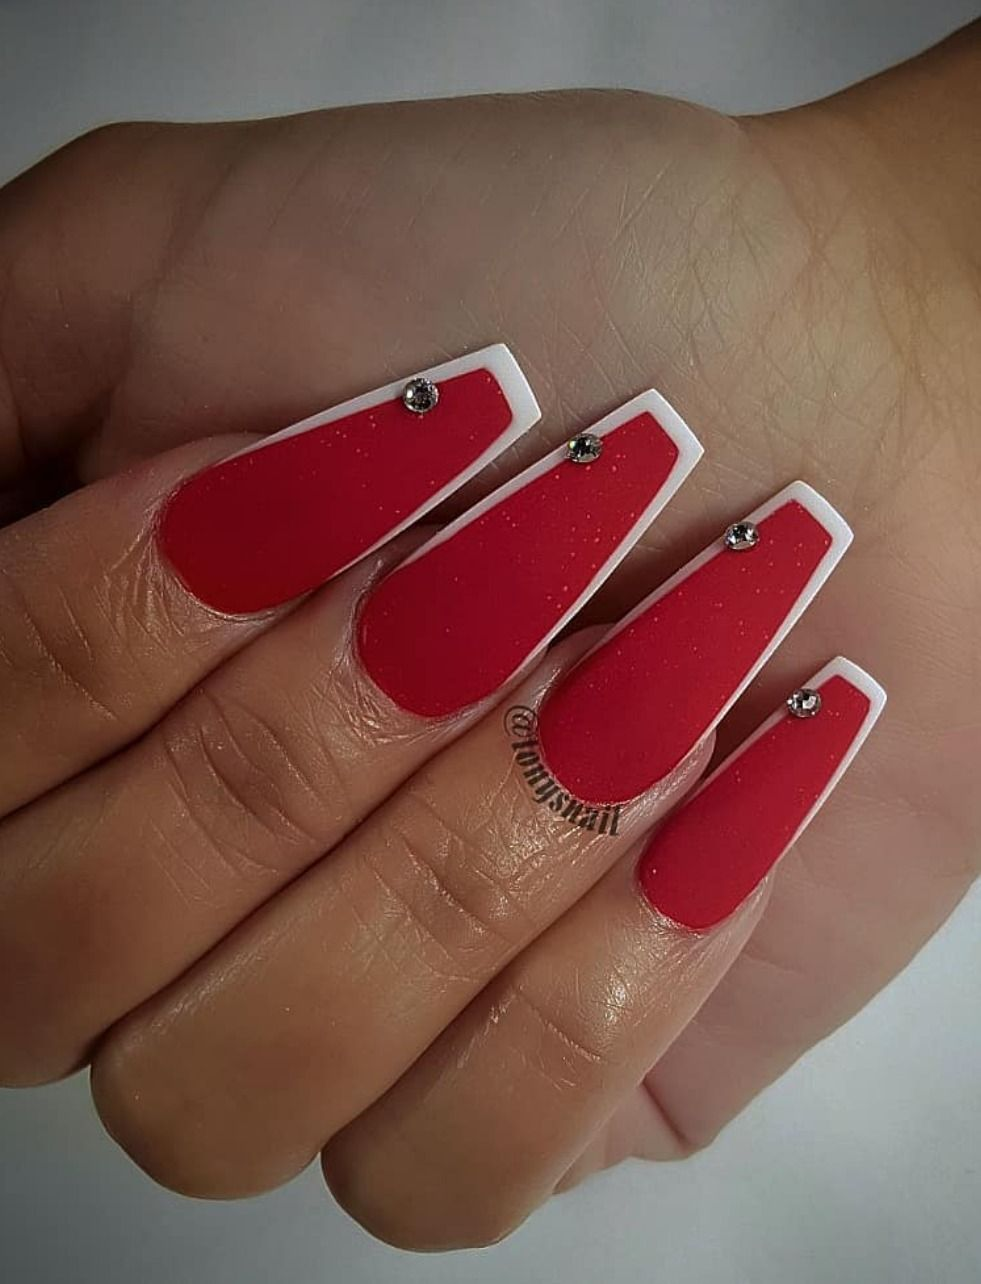 9 Stunning Modern French Manicure Ideas Stylish Belles White Tip Nails Red And White Nails Red Acrylic Nails